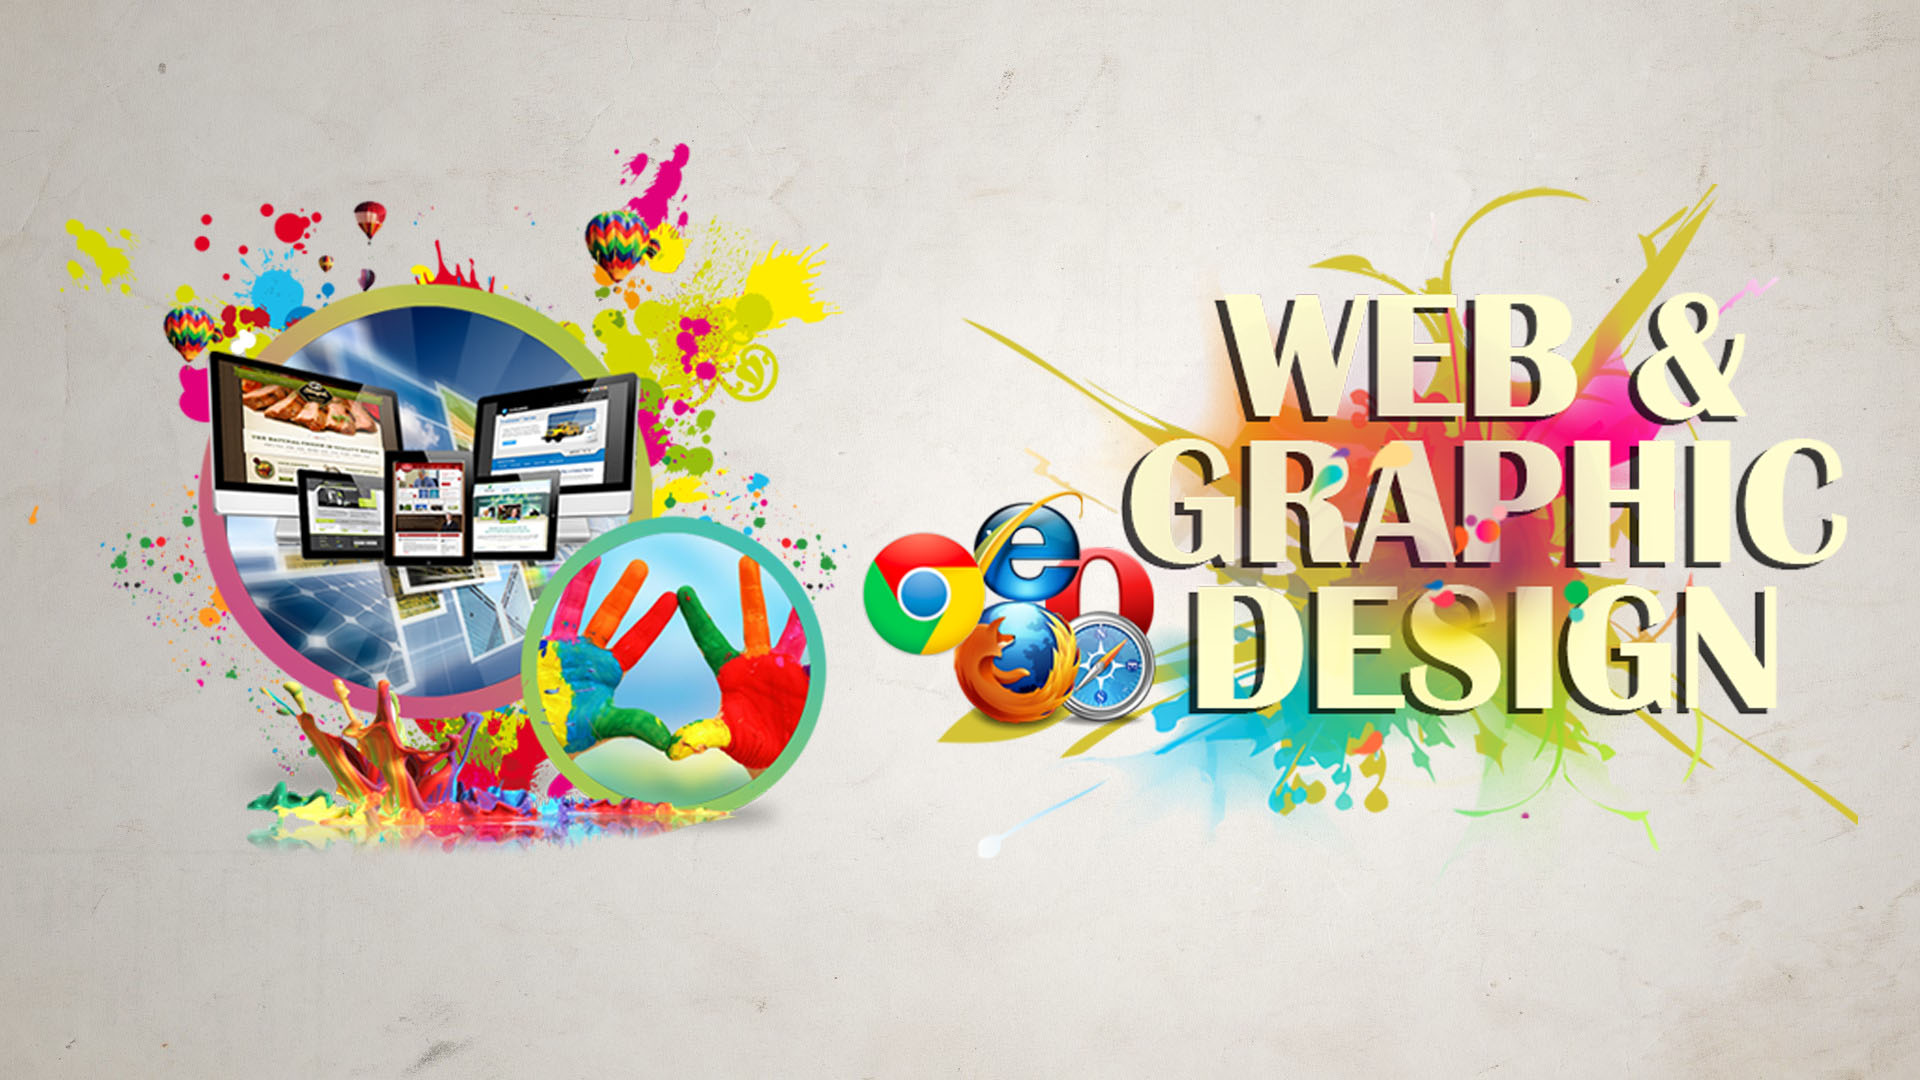 Website design & graphic design effective For Your Business